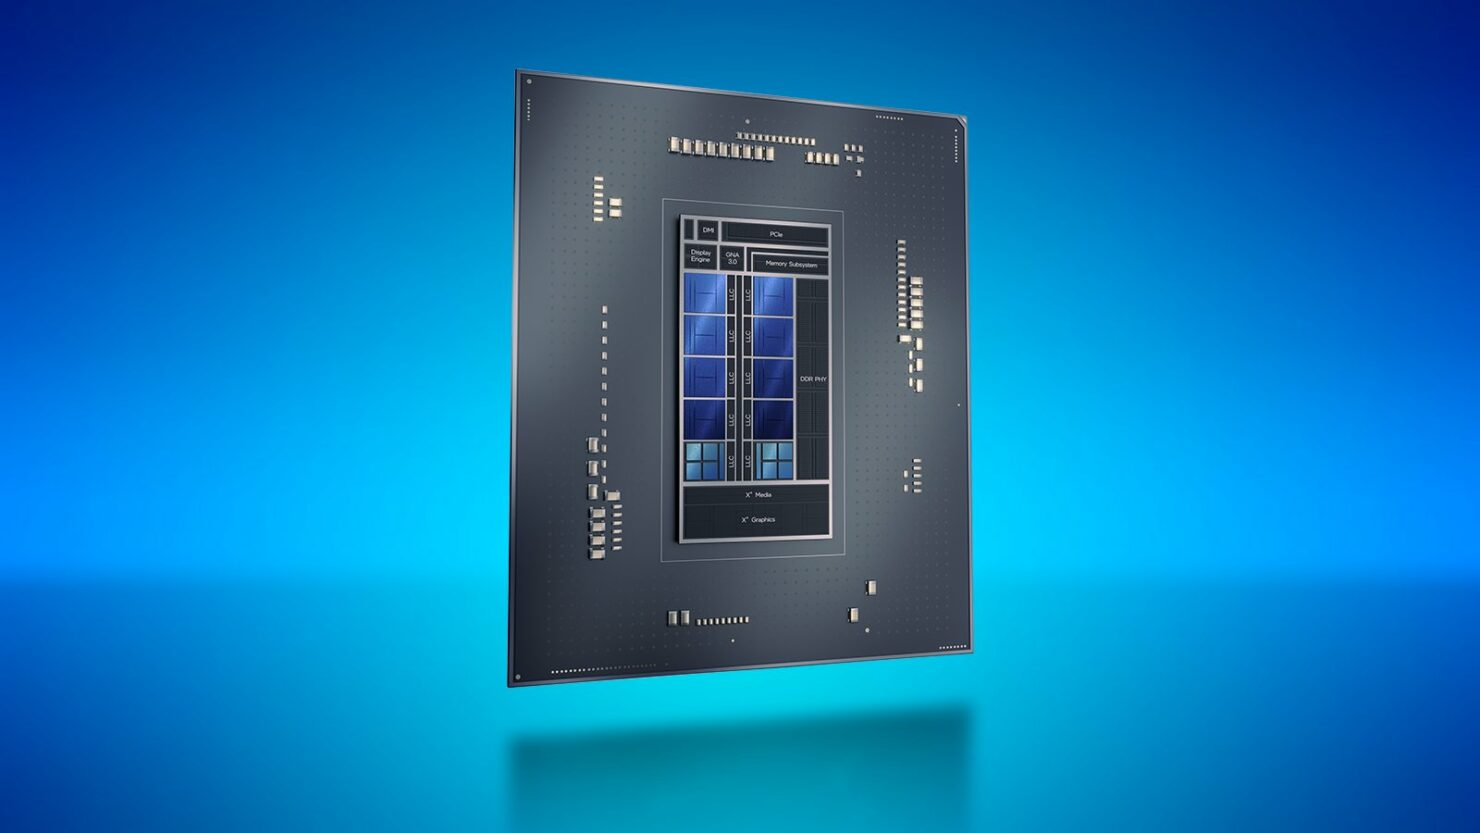 intel-core-i9-12900k-16-core-alder-lake-cpu-benchmarked-on-asus-rog-strix-z690-e-gaming-wifi-motherboard,-faster-than-core-i9-11900k